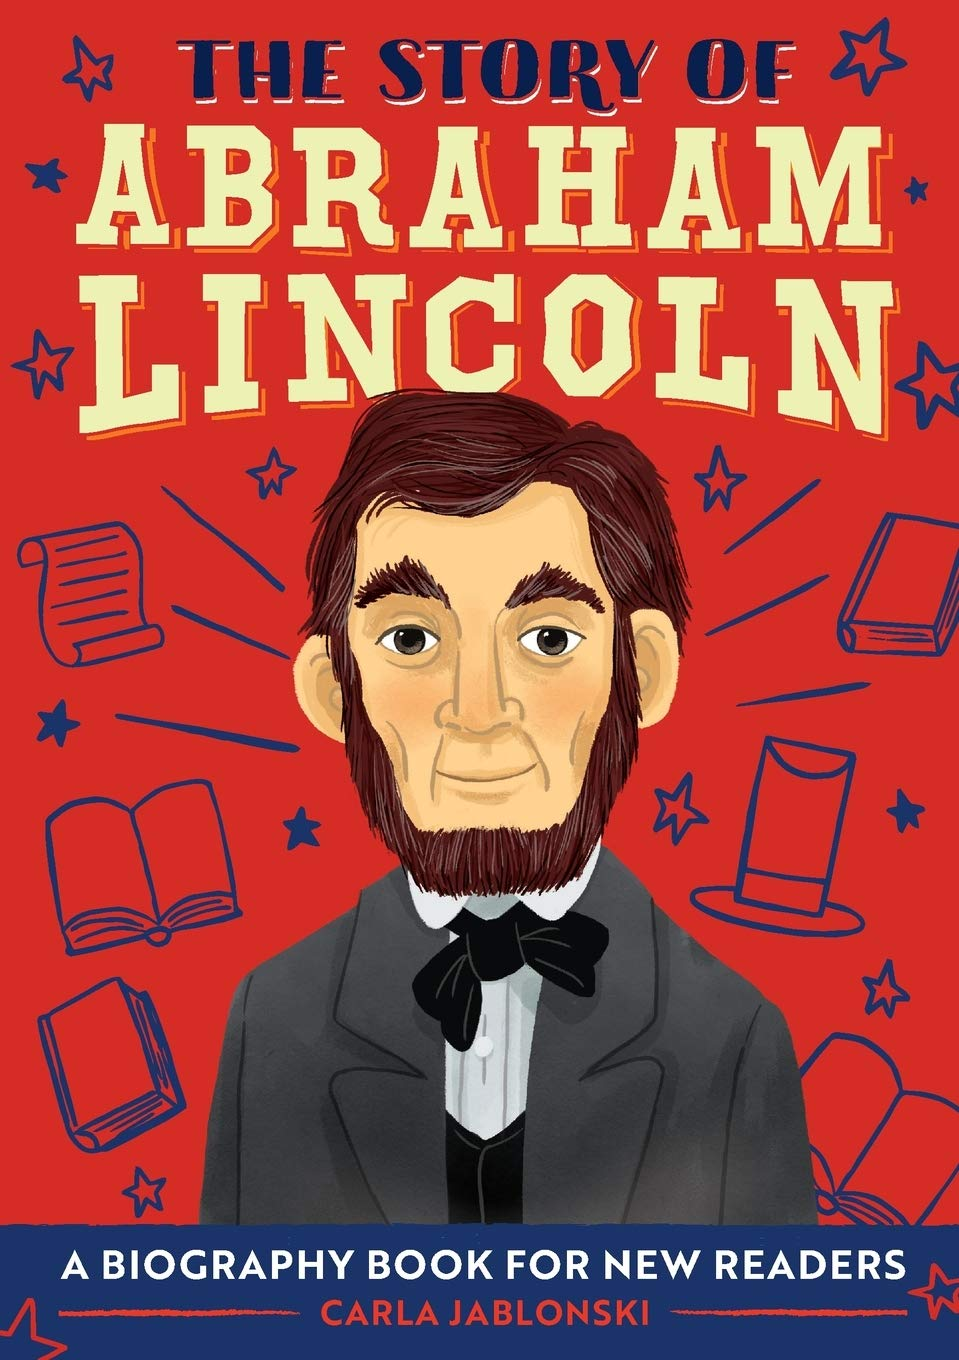 The Story of Abraham Lincoln: A Biography Book for New Readers